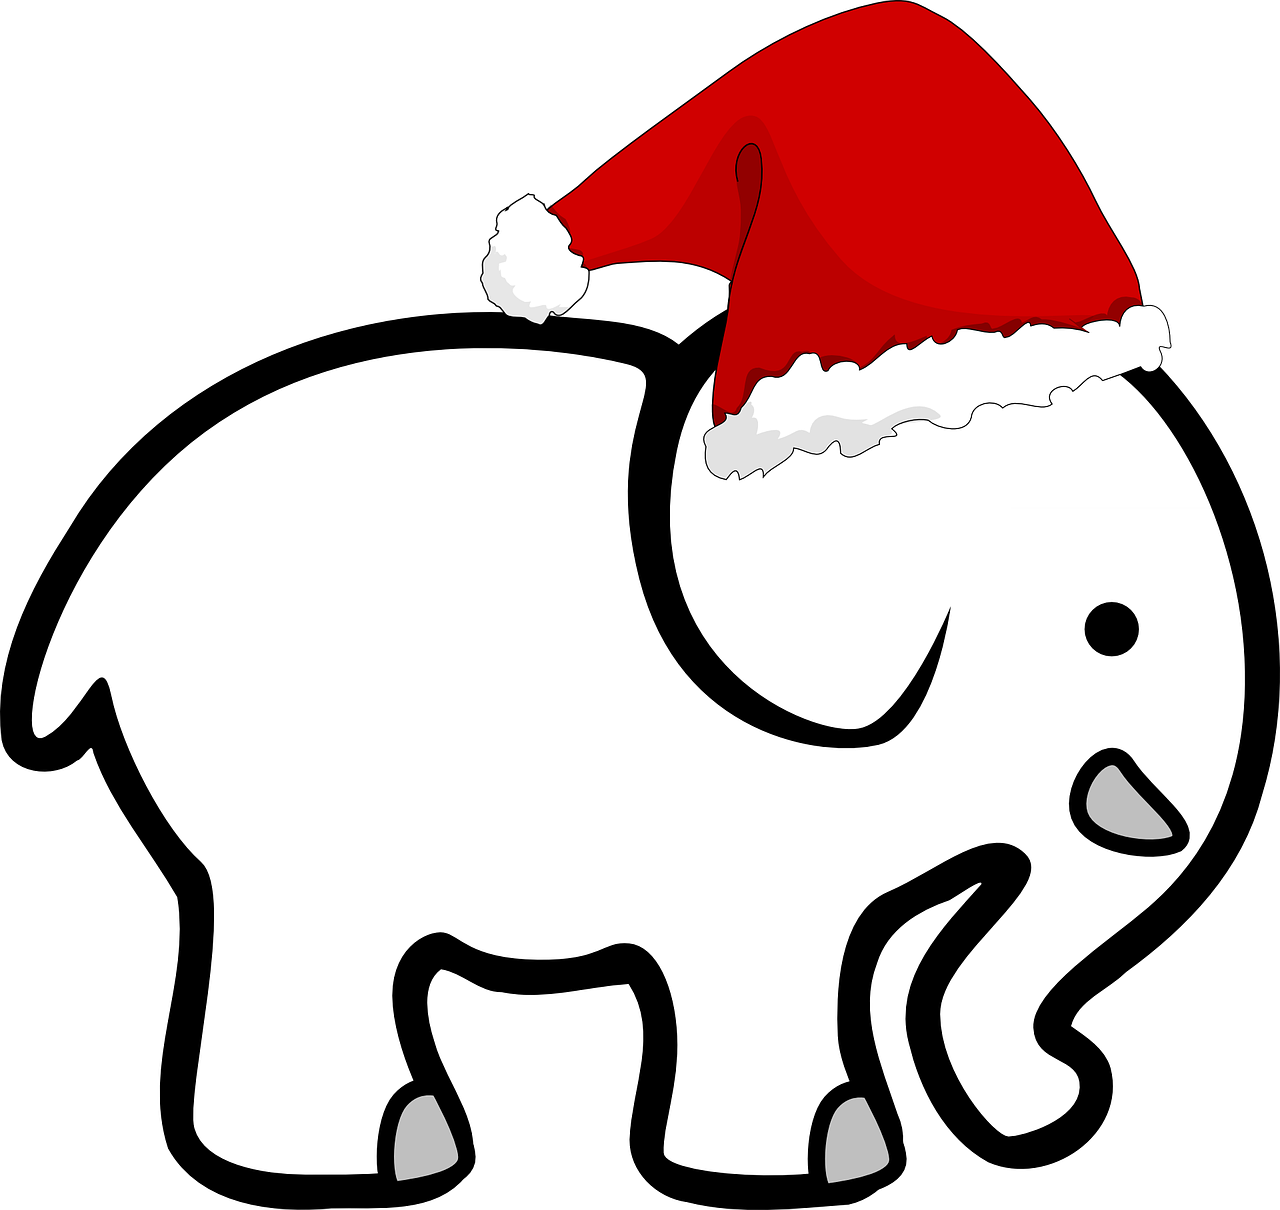 collection of white. Gifts clipart present outline